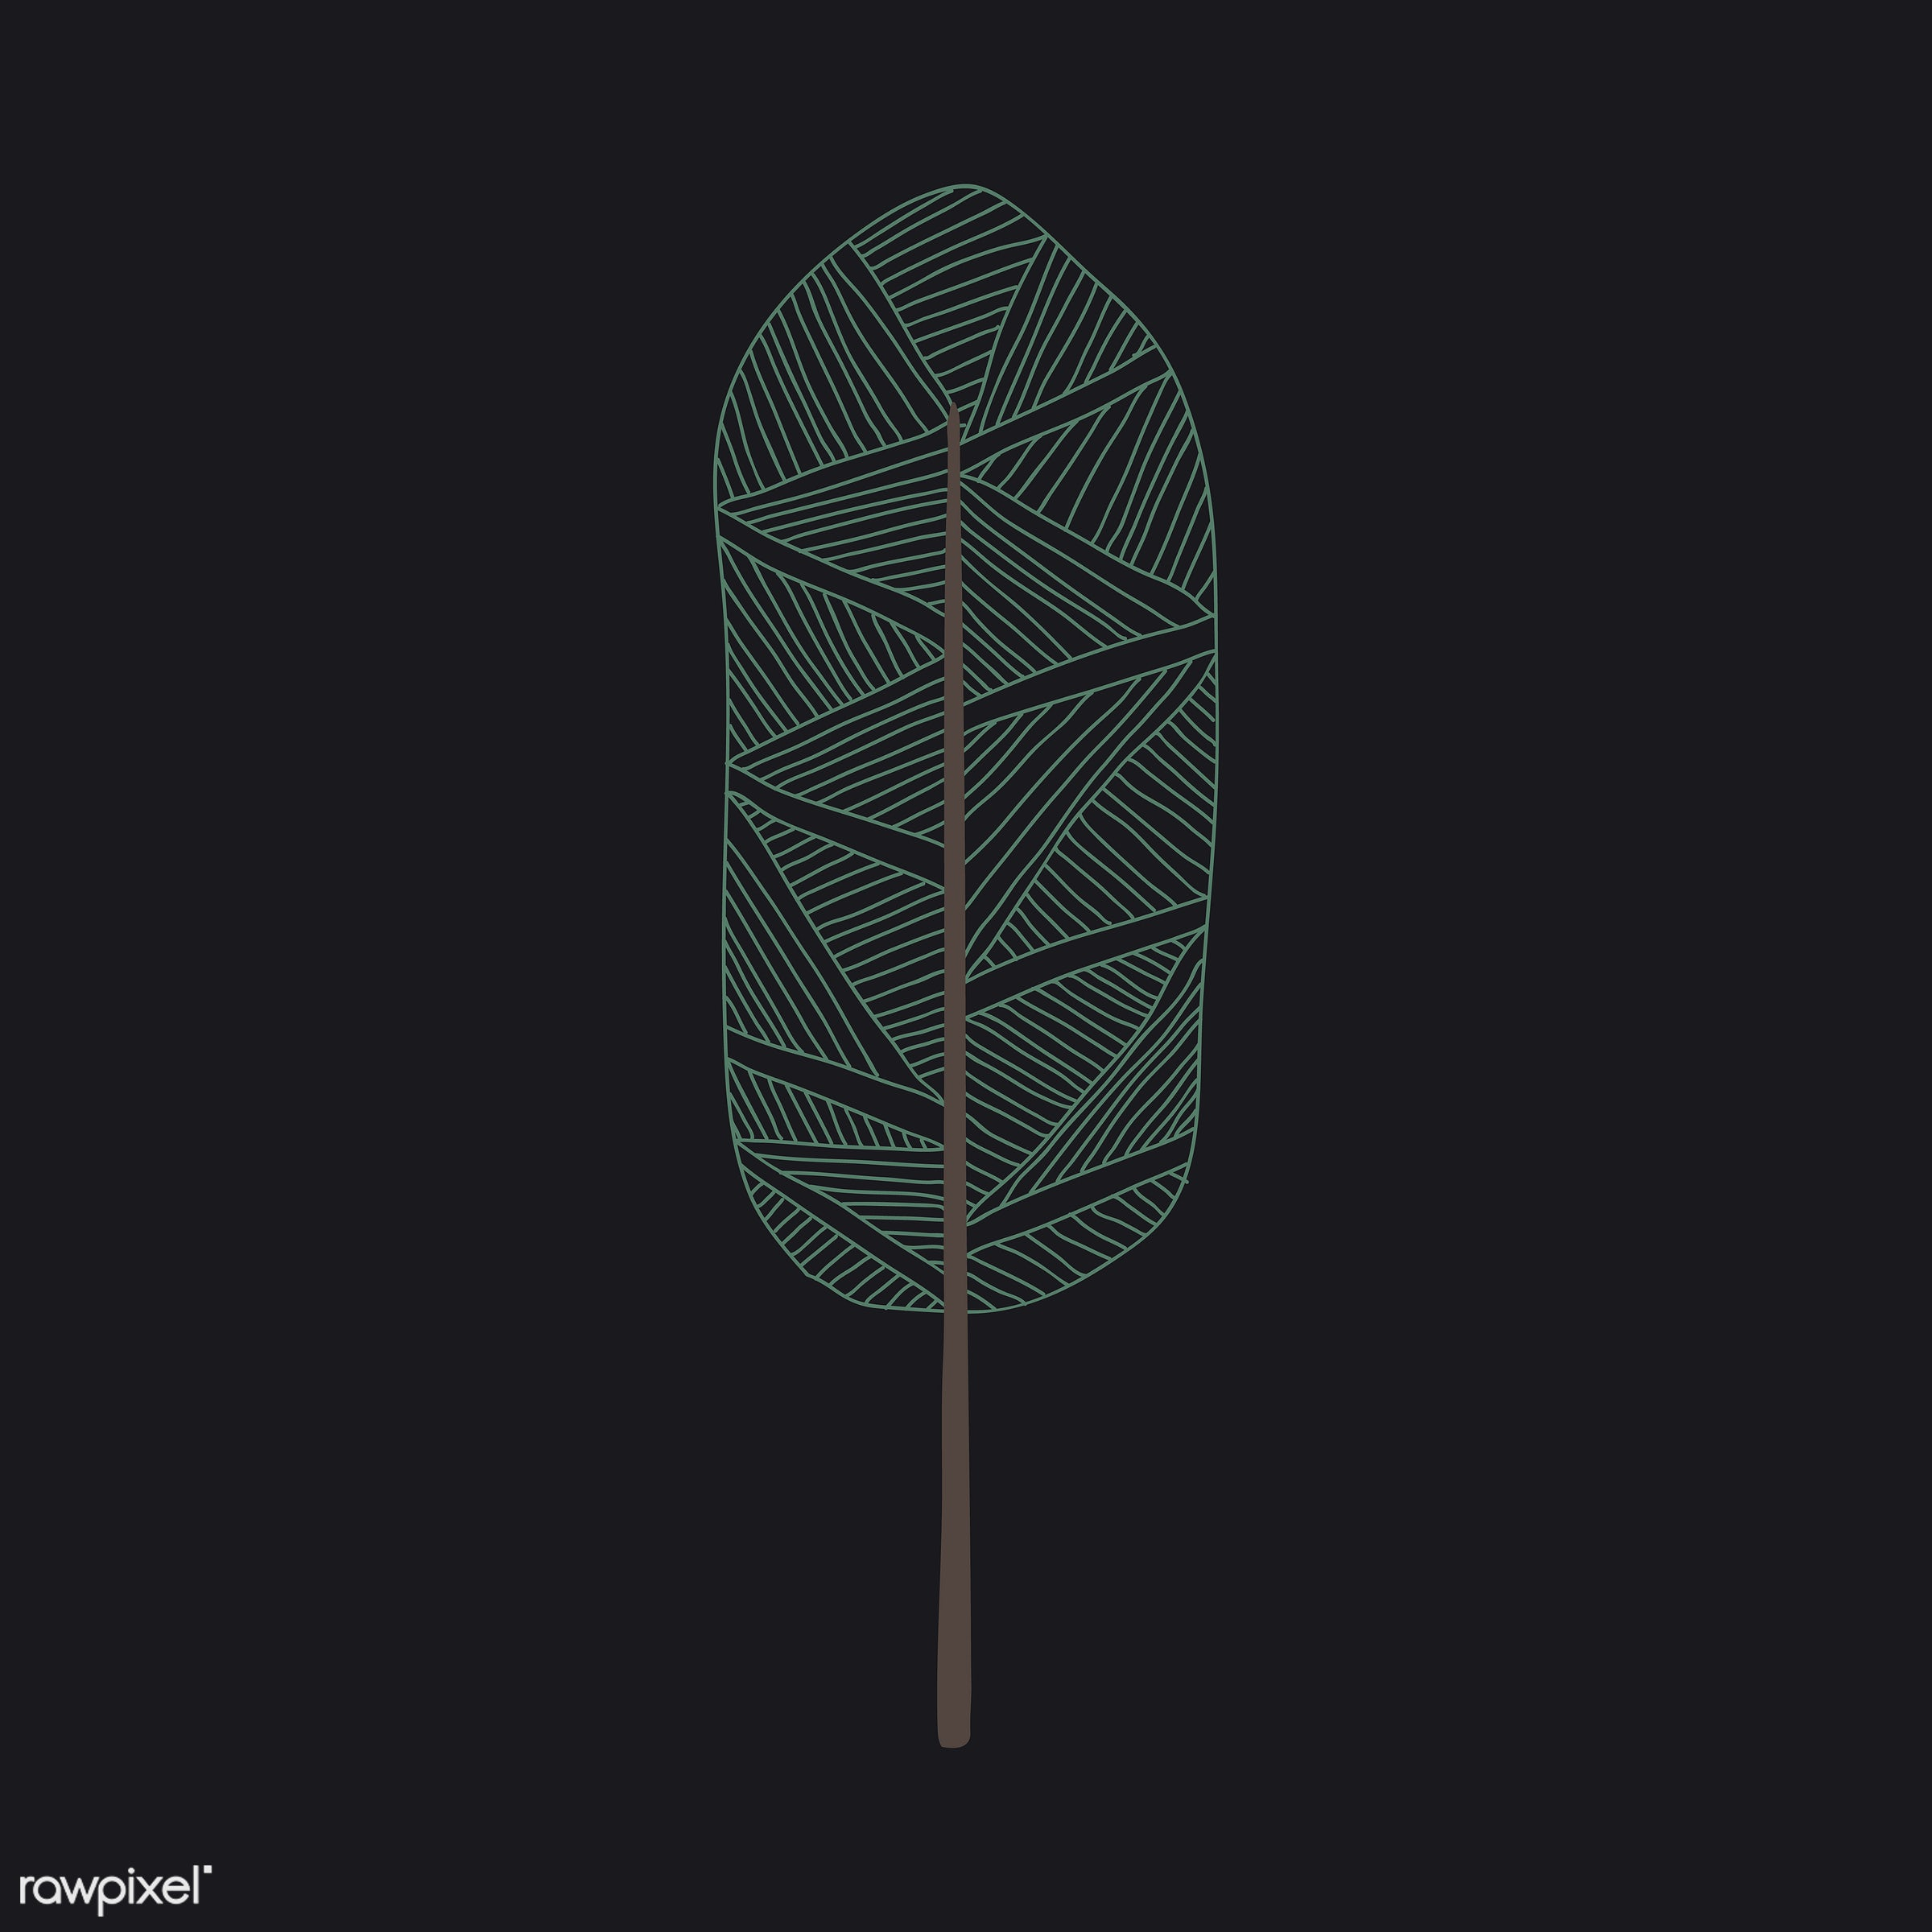 botanical, design, flora, graphic, icon, illustration, isolated, nature, ornaments, plant, tree, vector, leaves, leaf, pines...